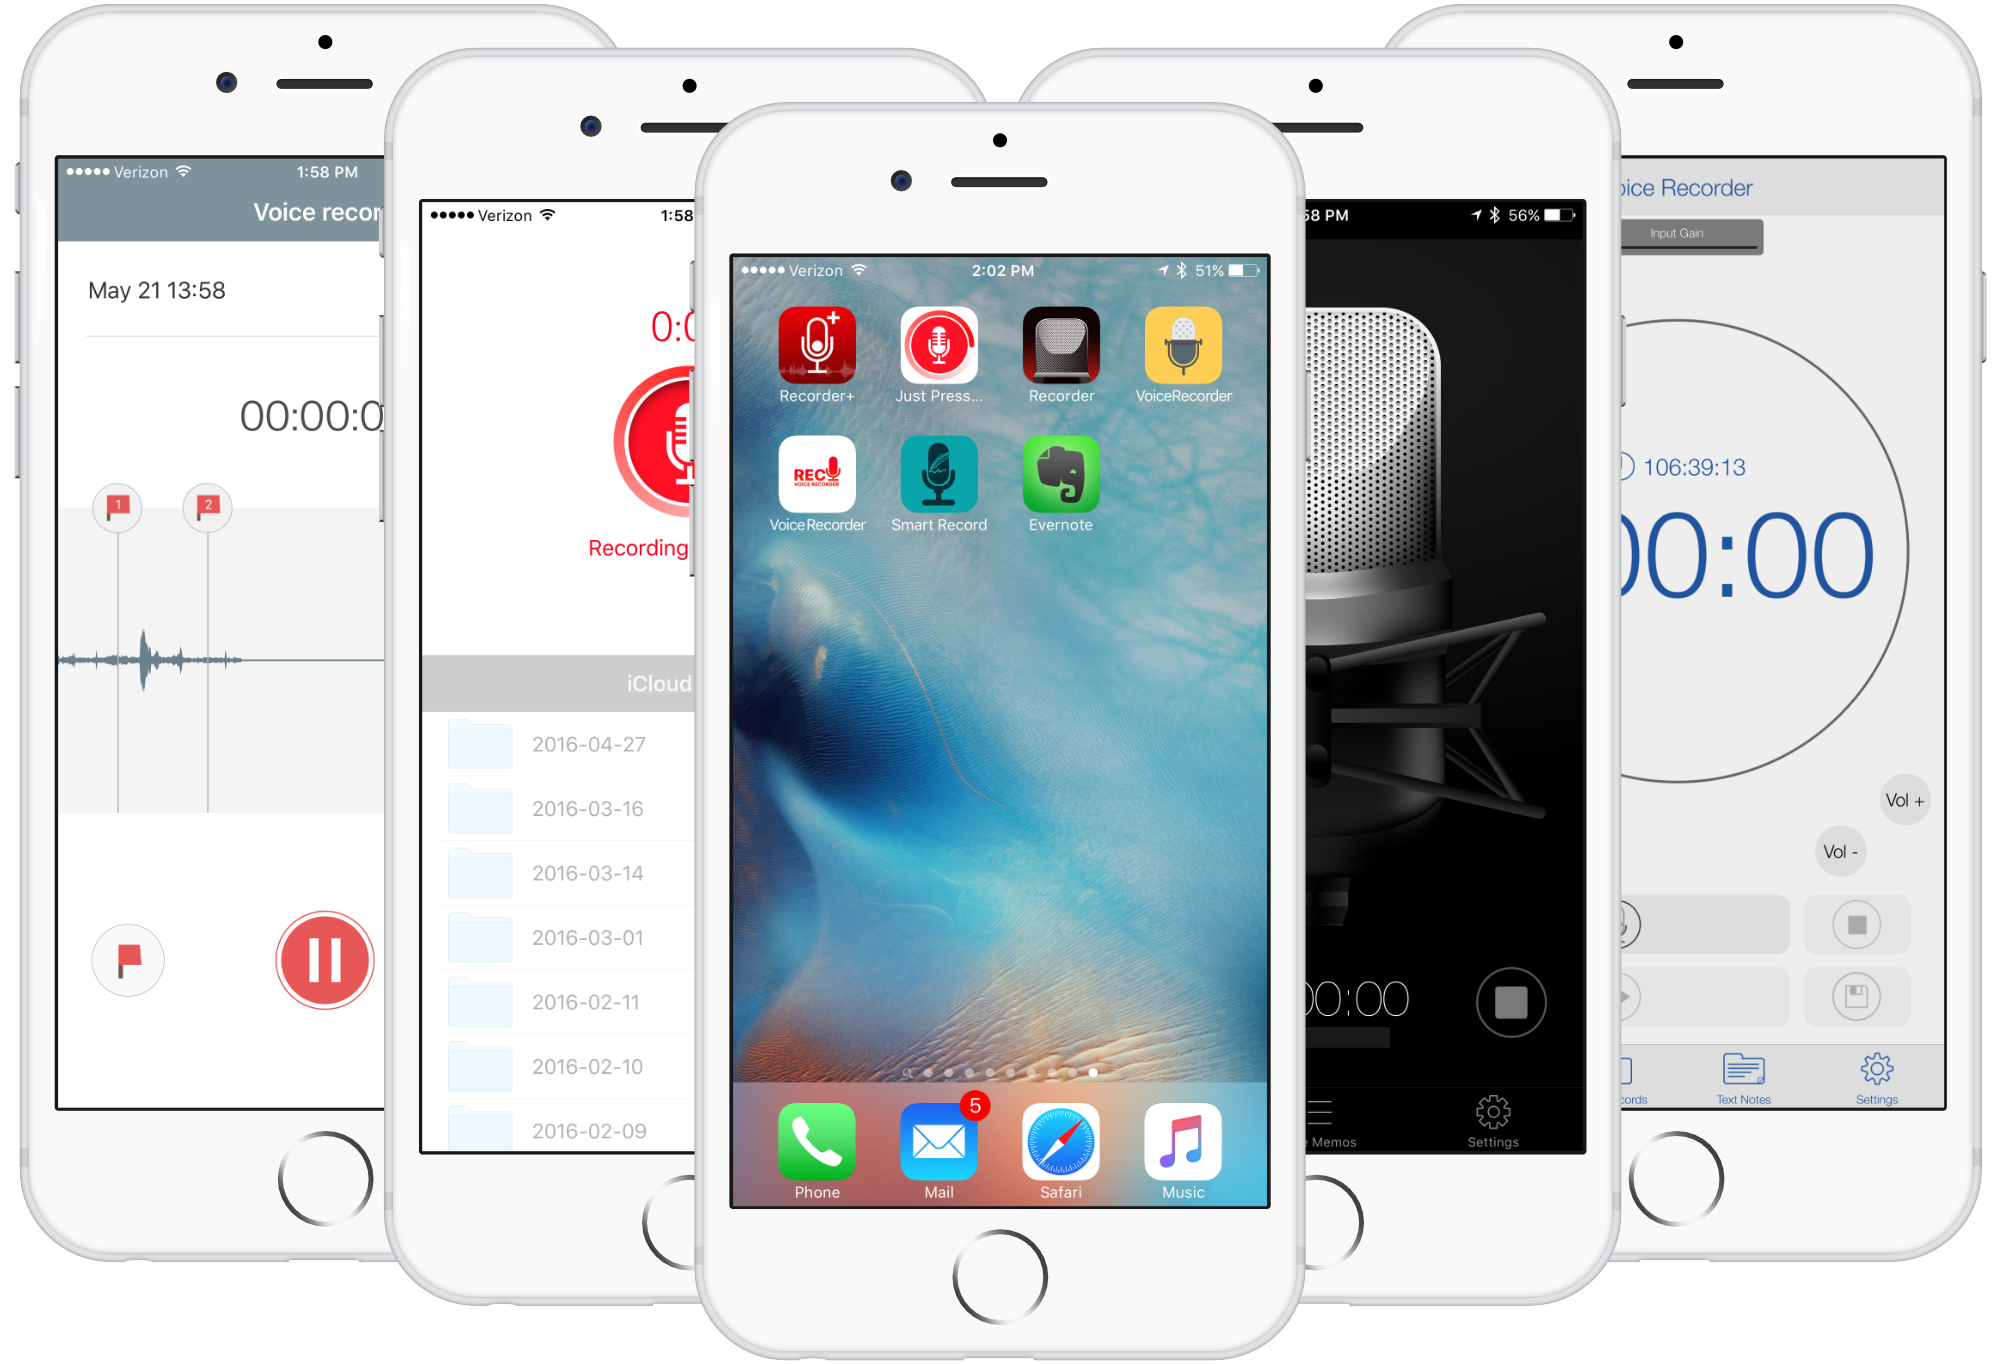 best voice recorder app for iphone 5s